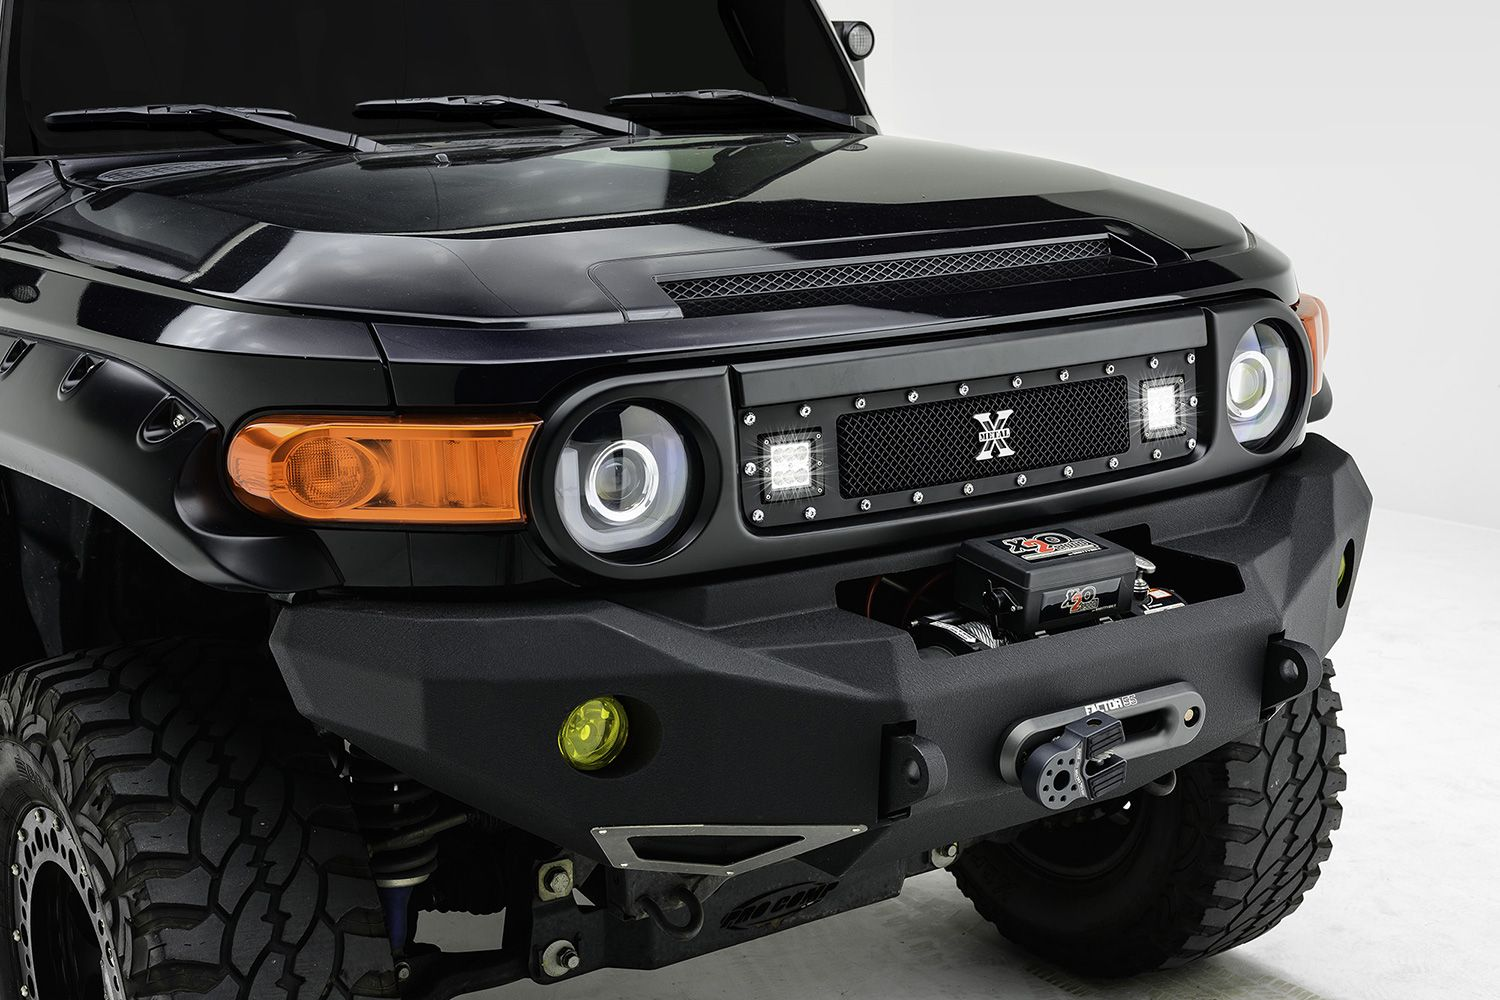 T rex 1 pc torch series black formed mesh grille with 2 x 3 led t rex 1 pc torch series black formed mesh grille with 2 x 3 led light cubes voltagebd